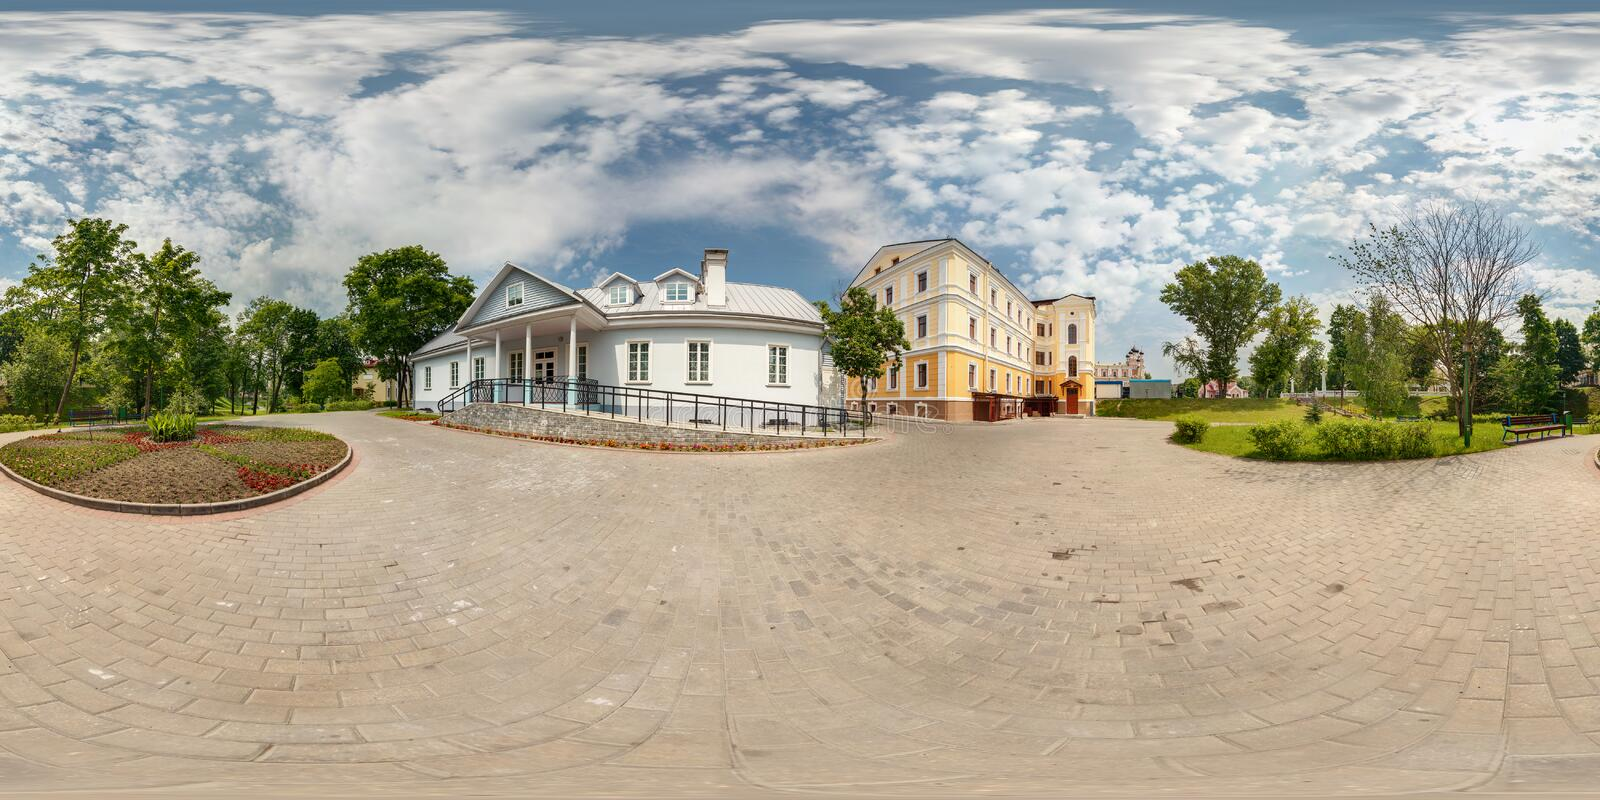 Full spherical 360 degrees seamless panorama in equirectangular equidistant projection, panorama in park of old city, VR content.  royalty free stock photo